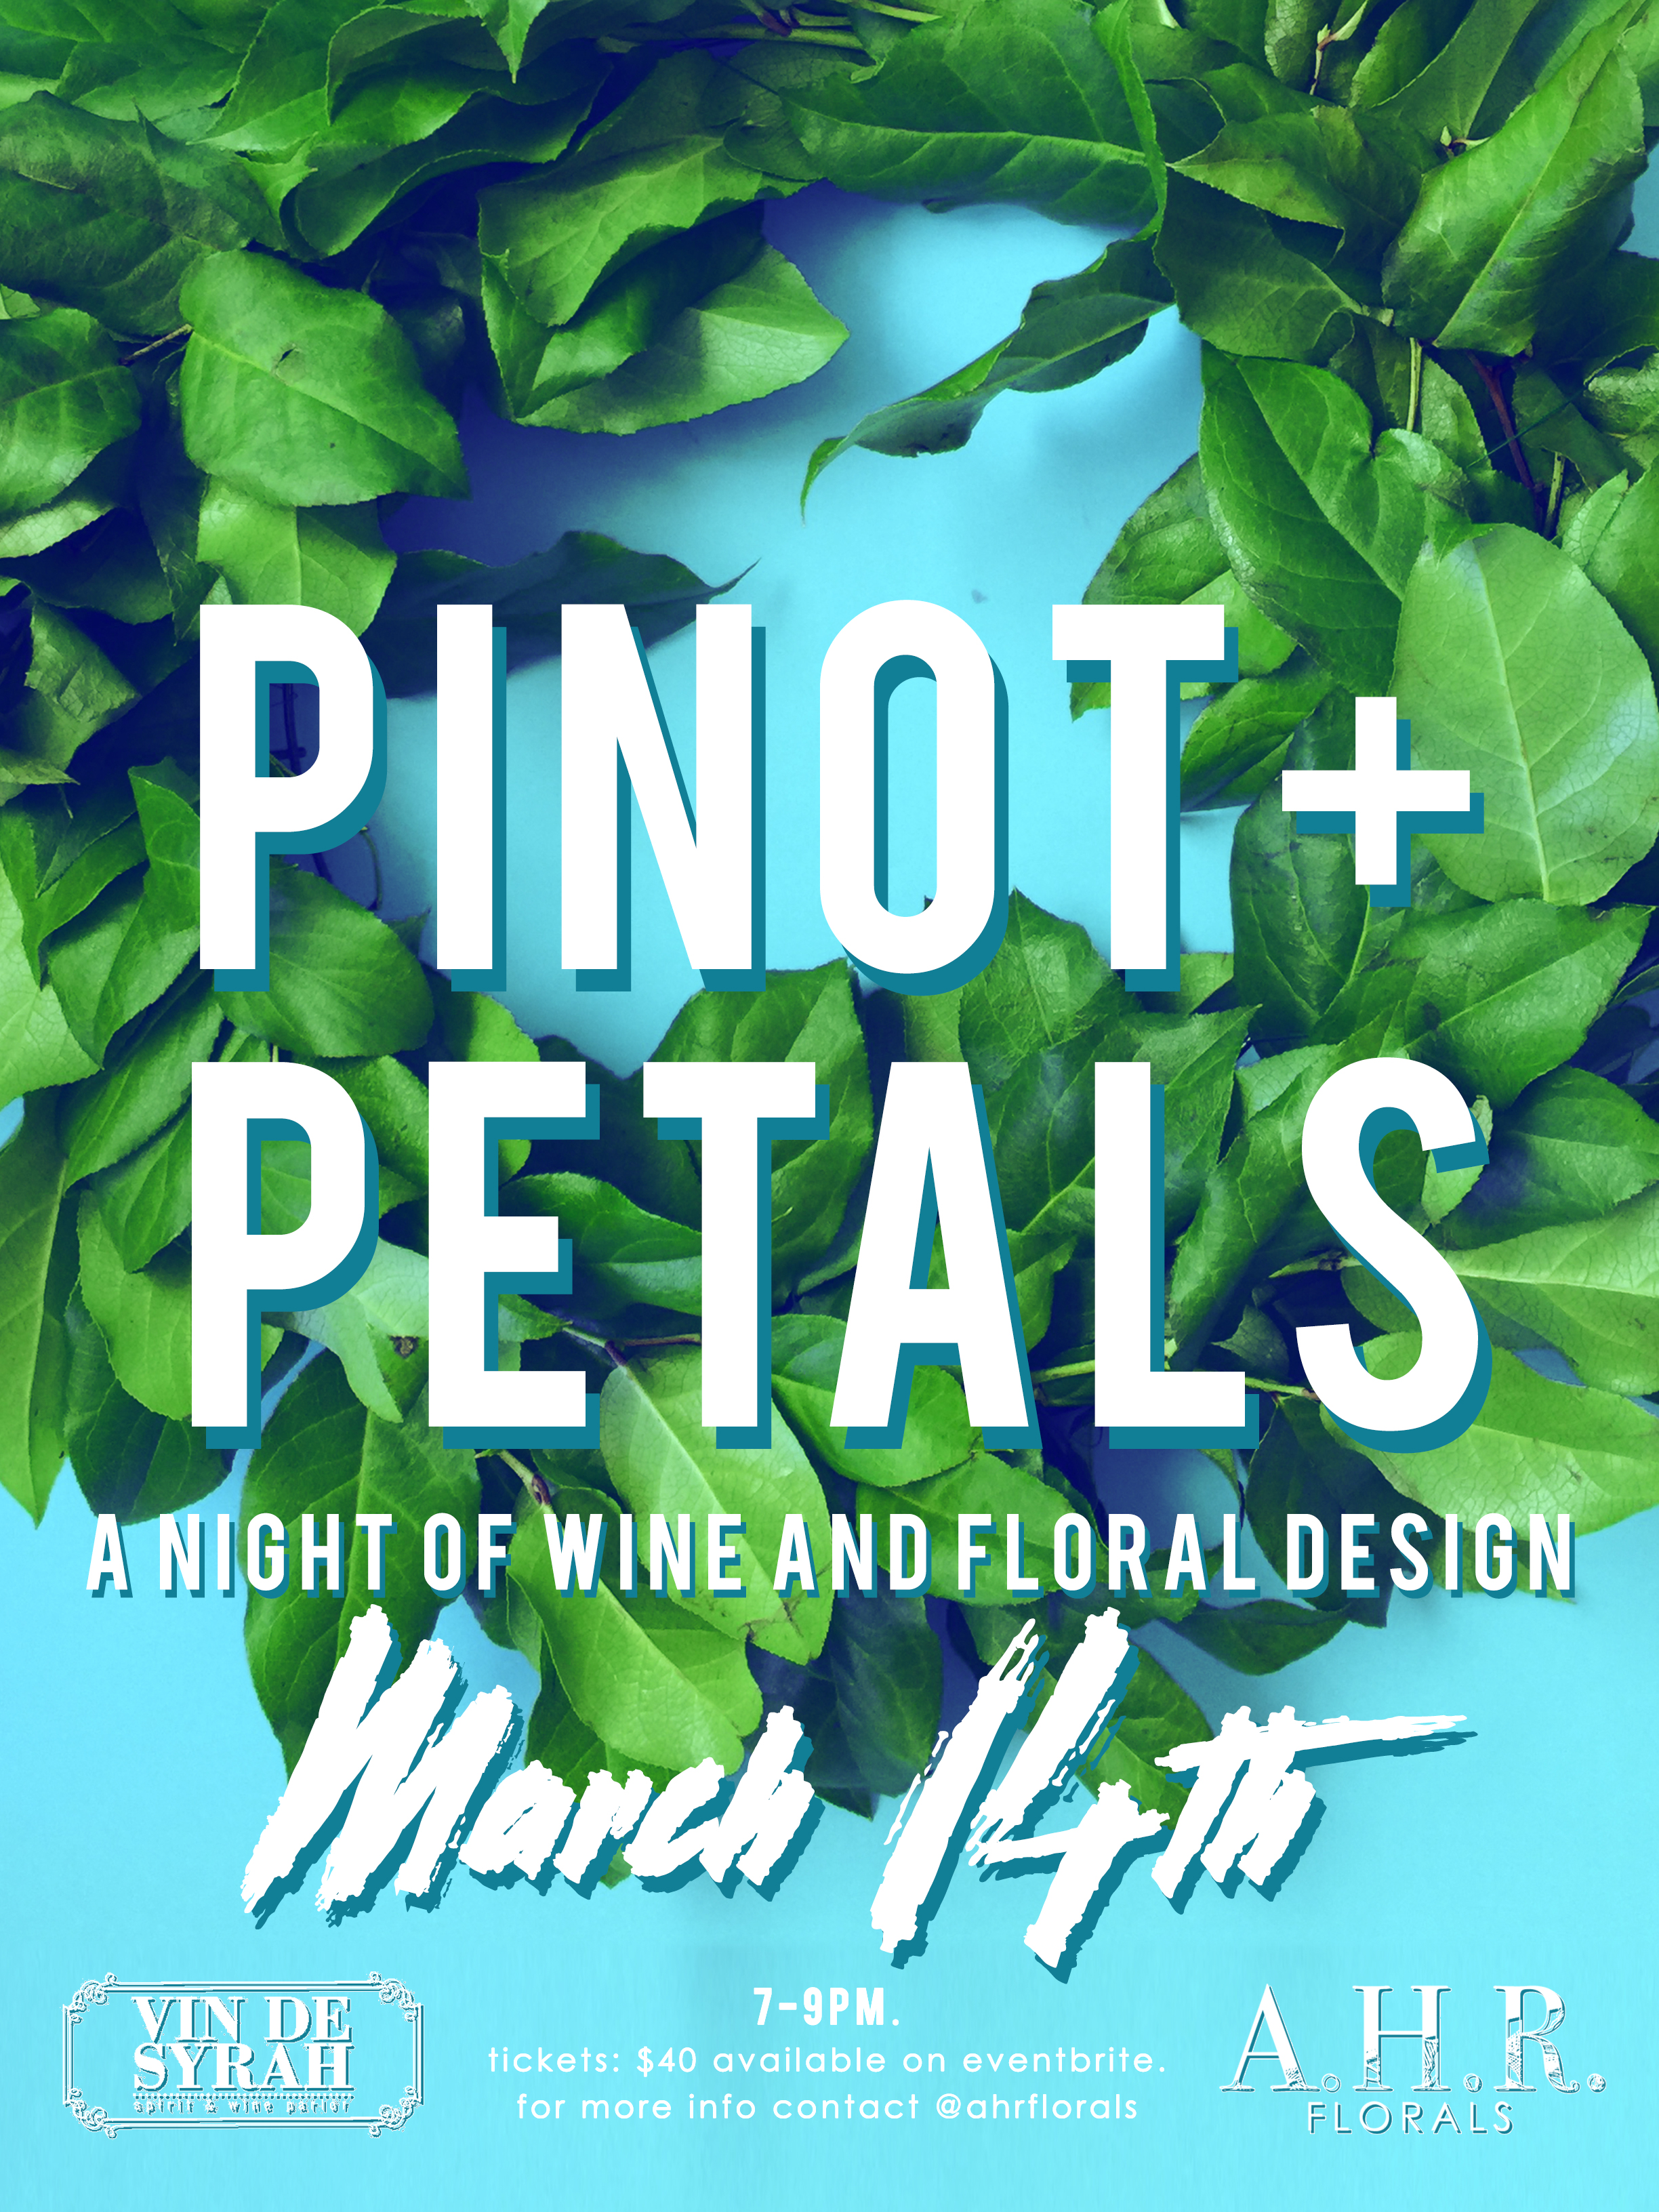 Pinot-and-Petals-San-Diego-March-14th-wine-and-flower2.jpg